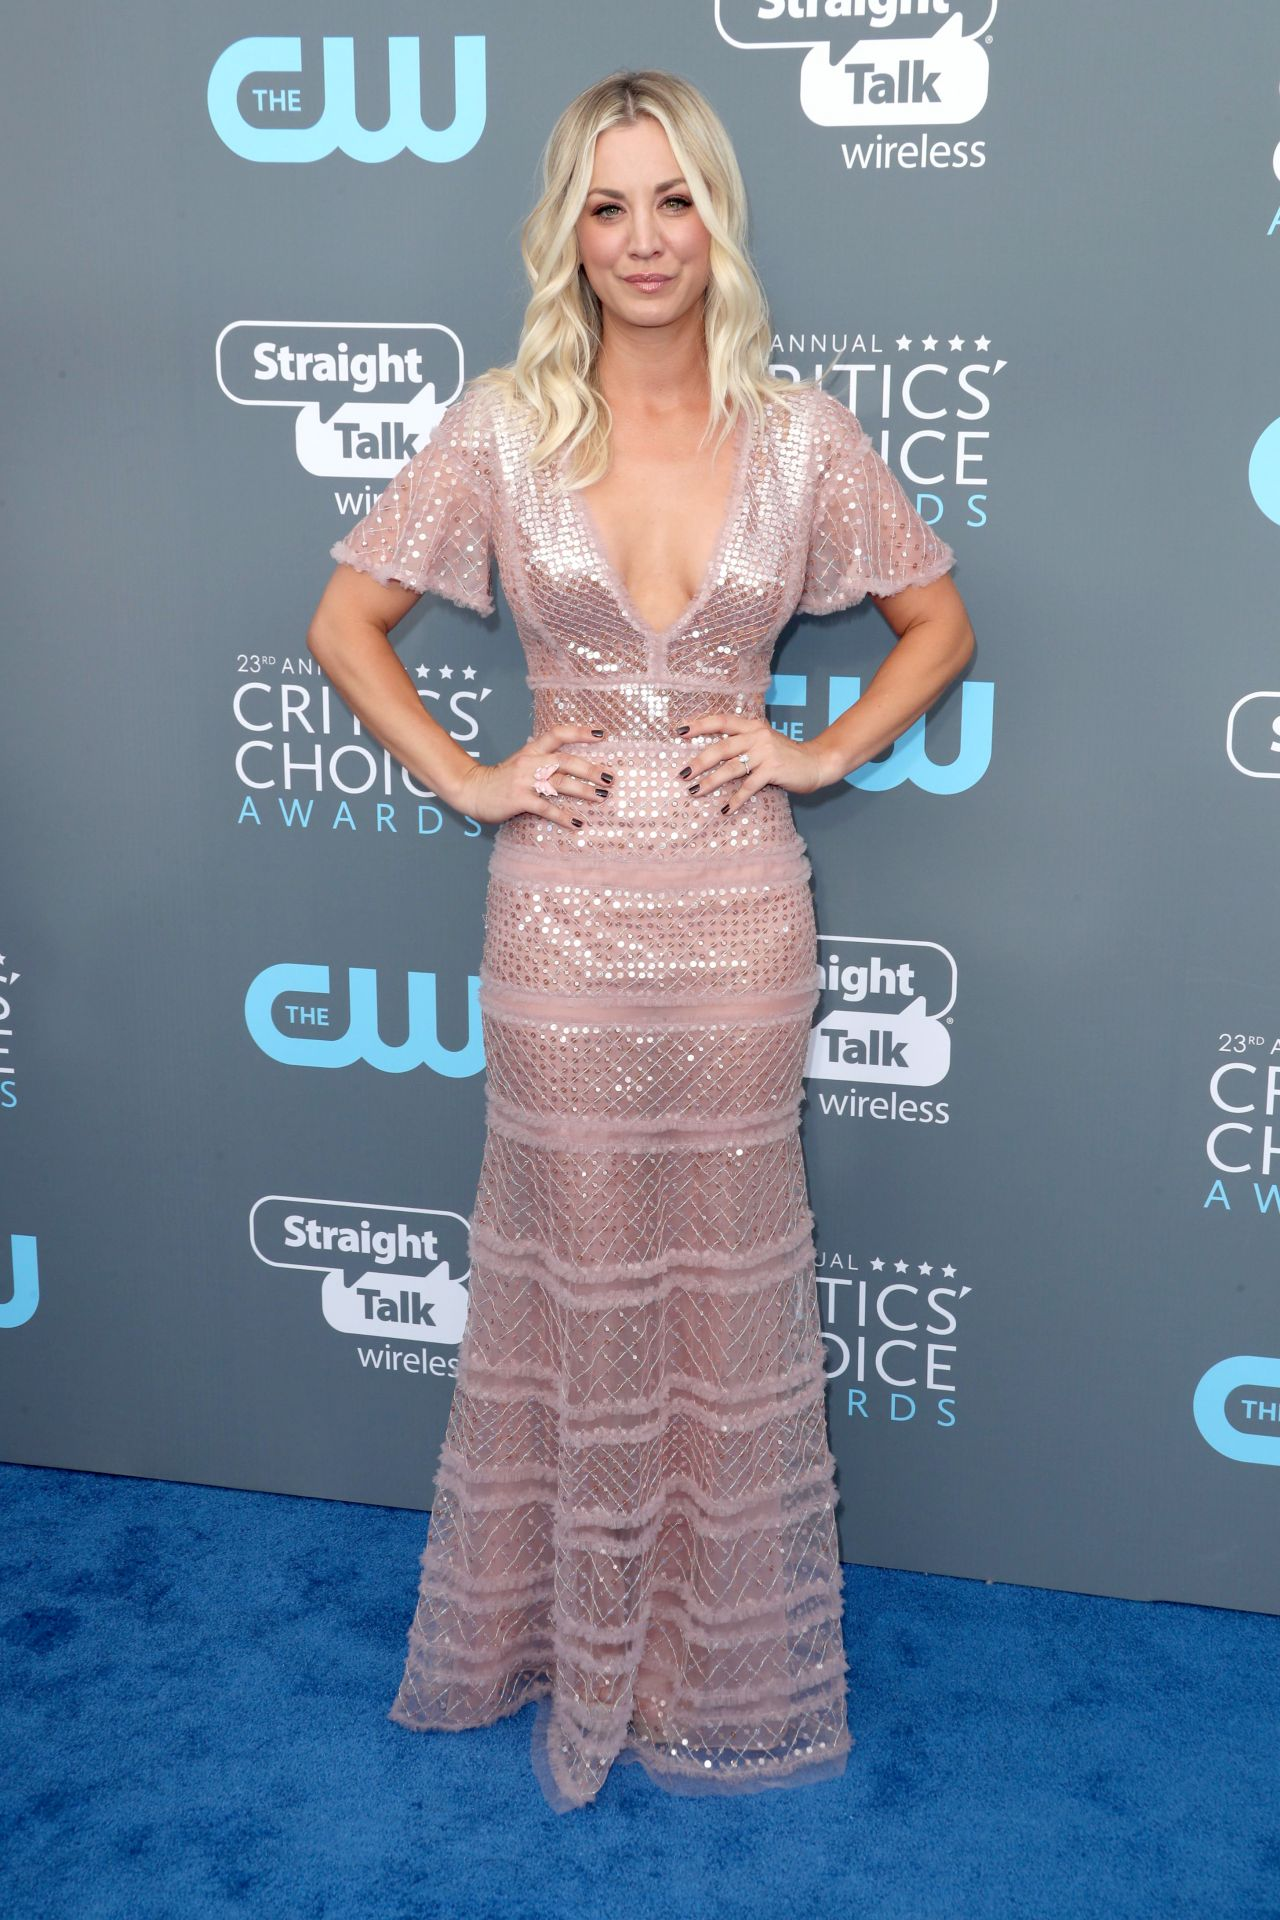 http://celebmafia.com/wp-content/uploads/2018/01/kaley-cuoco-2018-critics-choice-awards-0.jpg